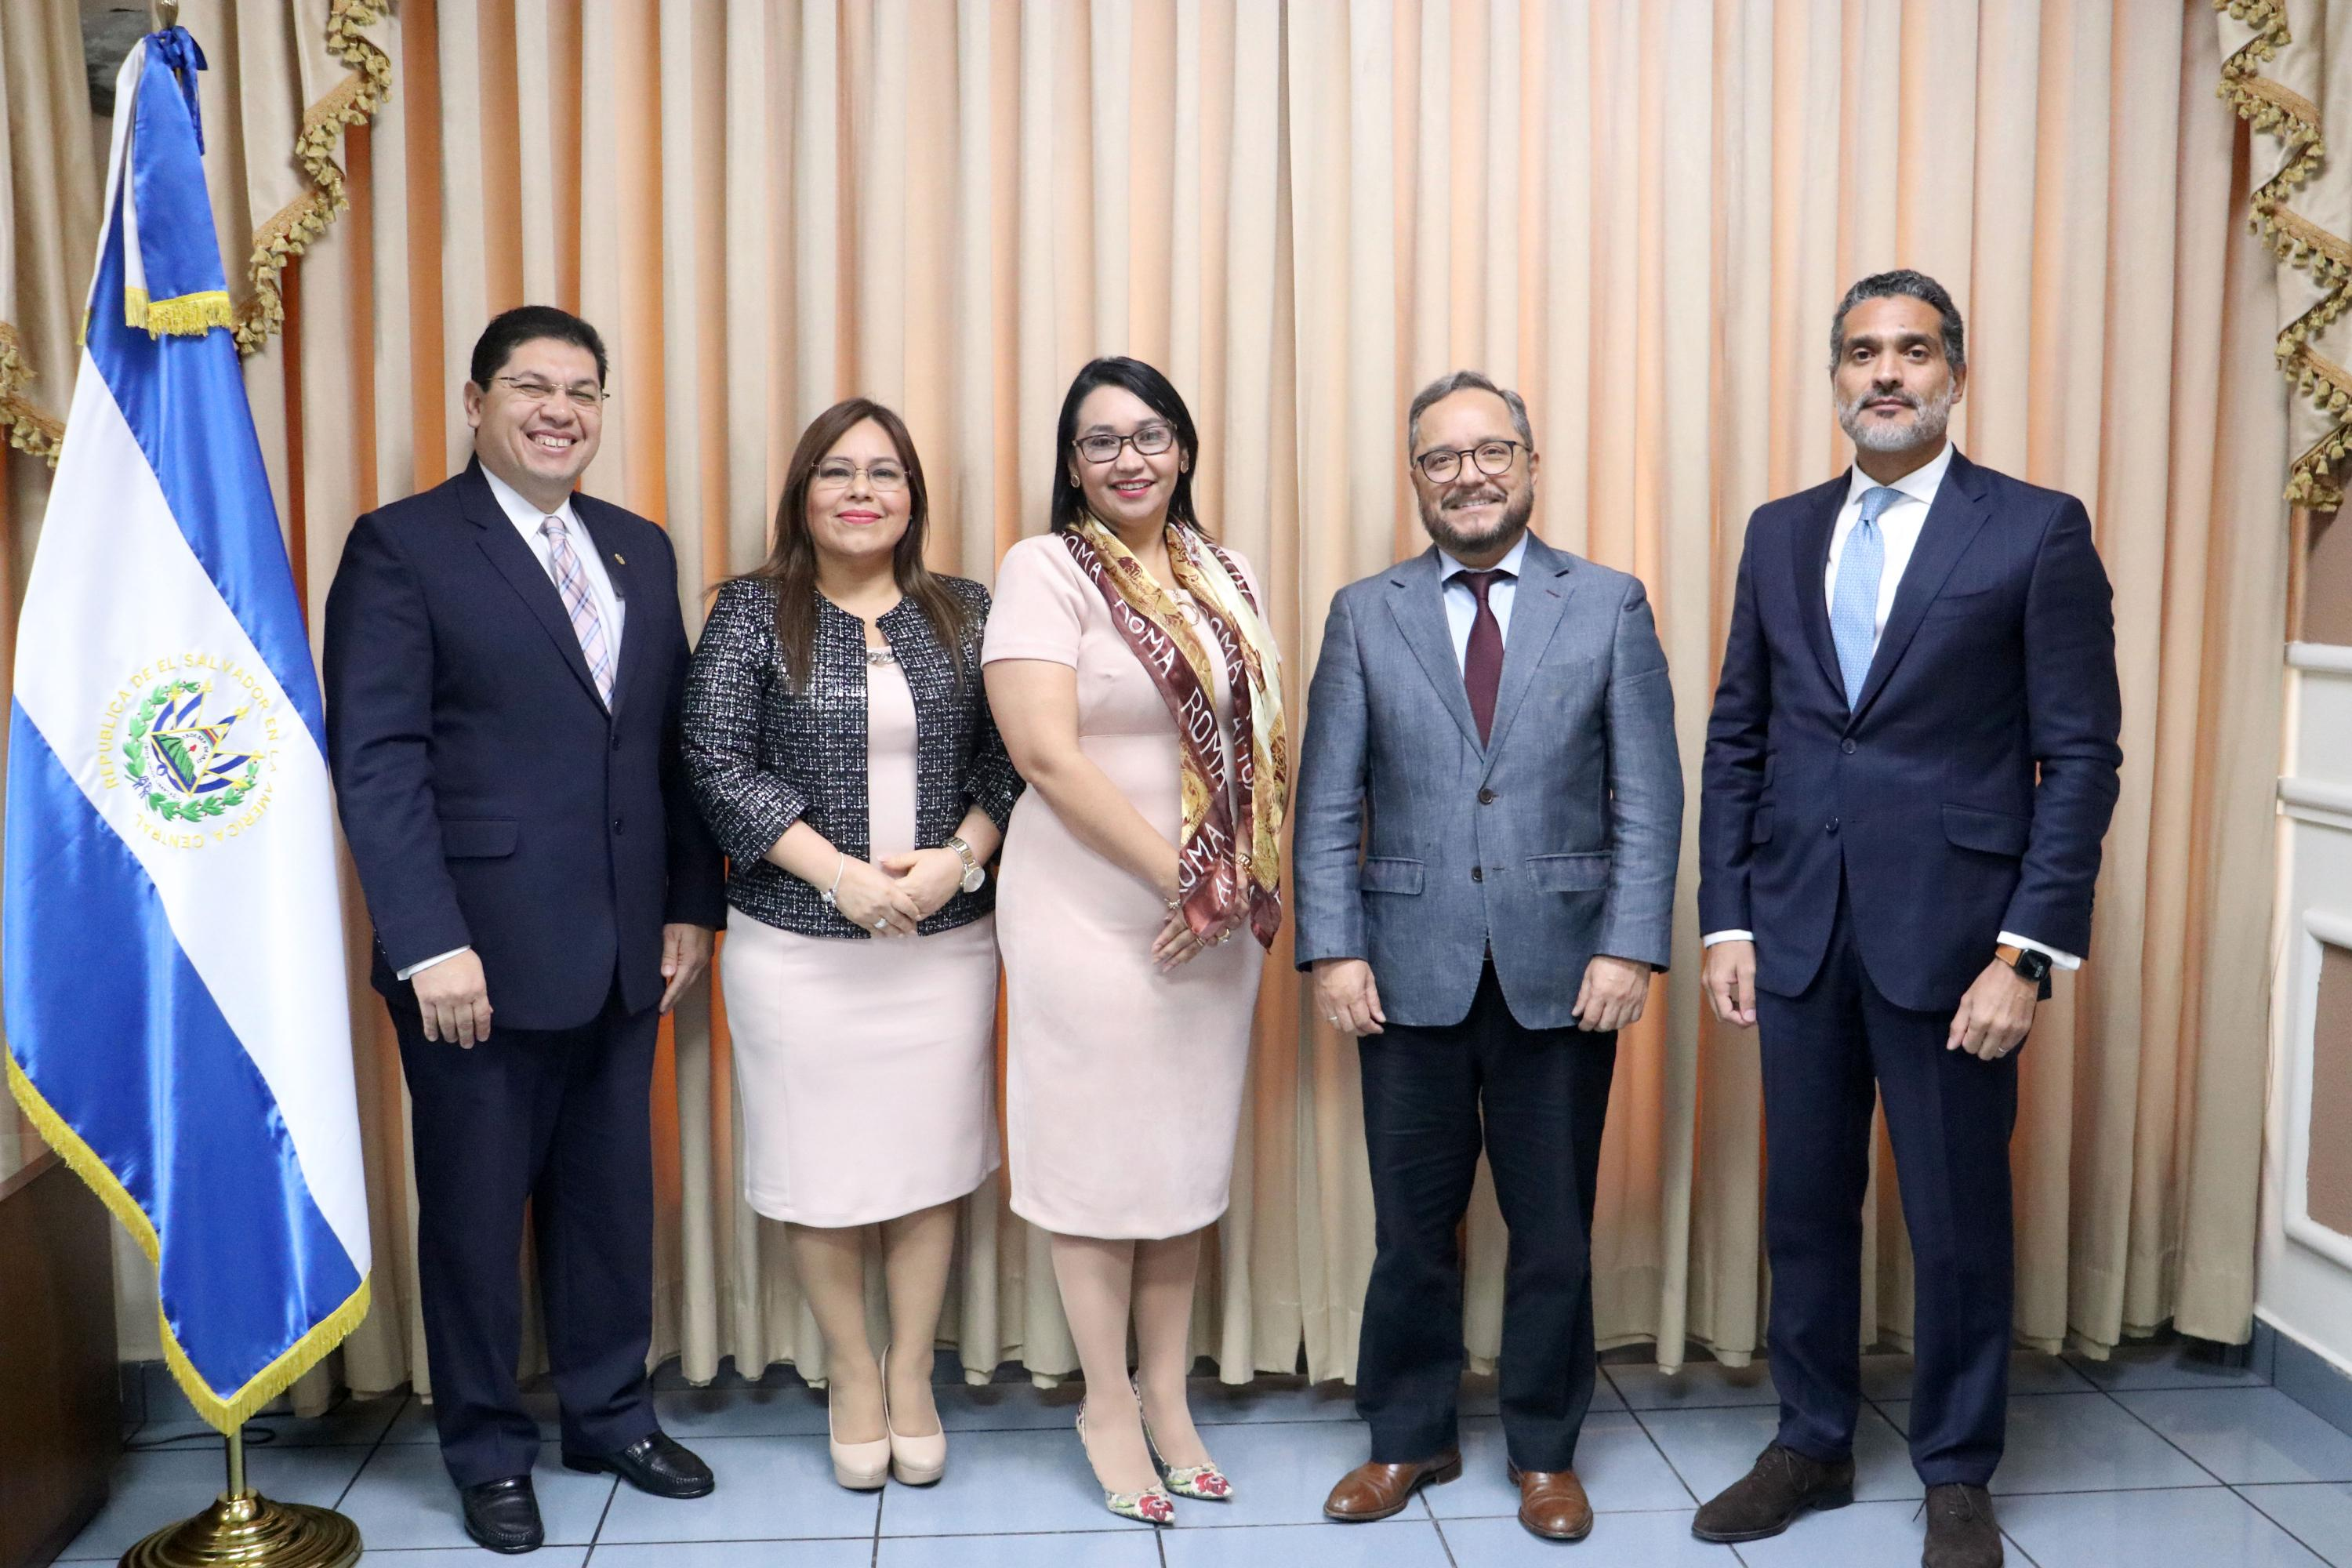 At a meeting in March, 2020, Gutiérrez and Ochaeta discussed joint training and development projects with magistrates from the Court of Accounts. Photo courtesy CCR.